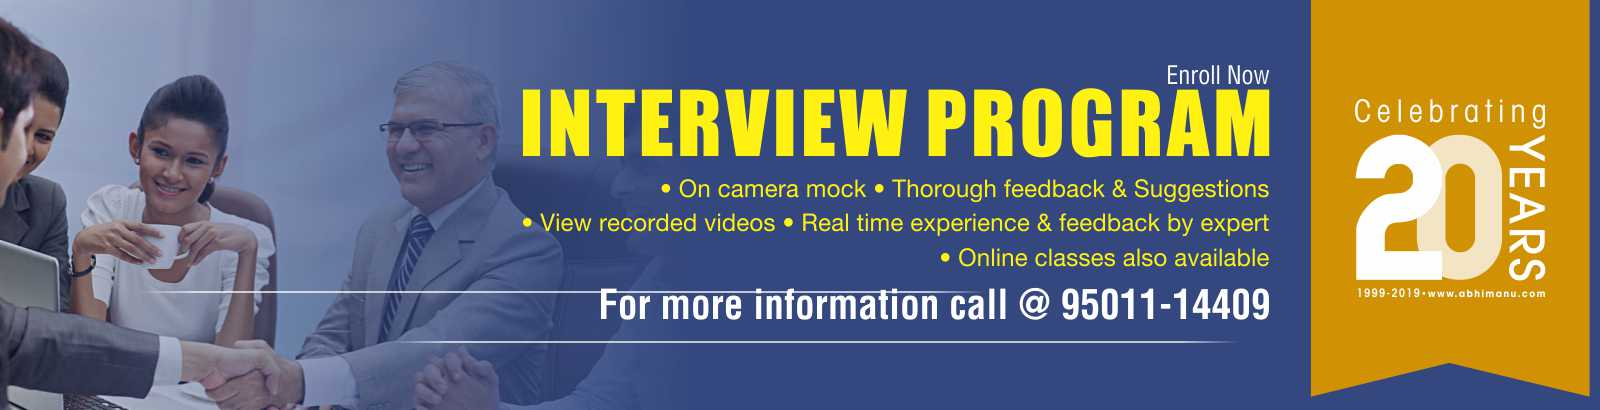 Interview-Program